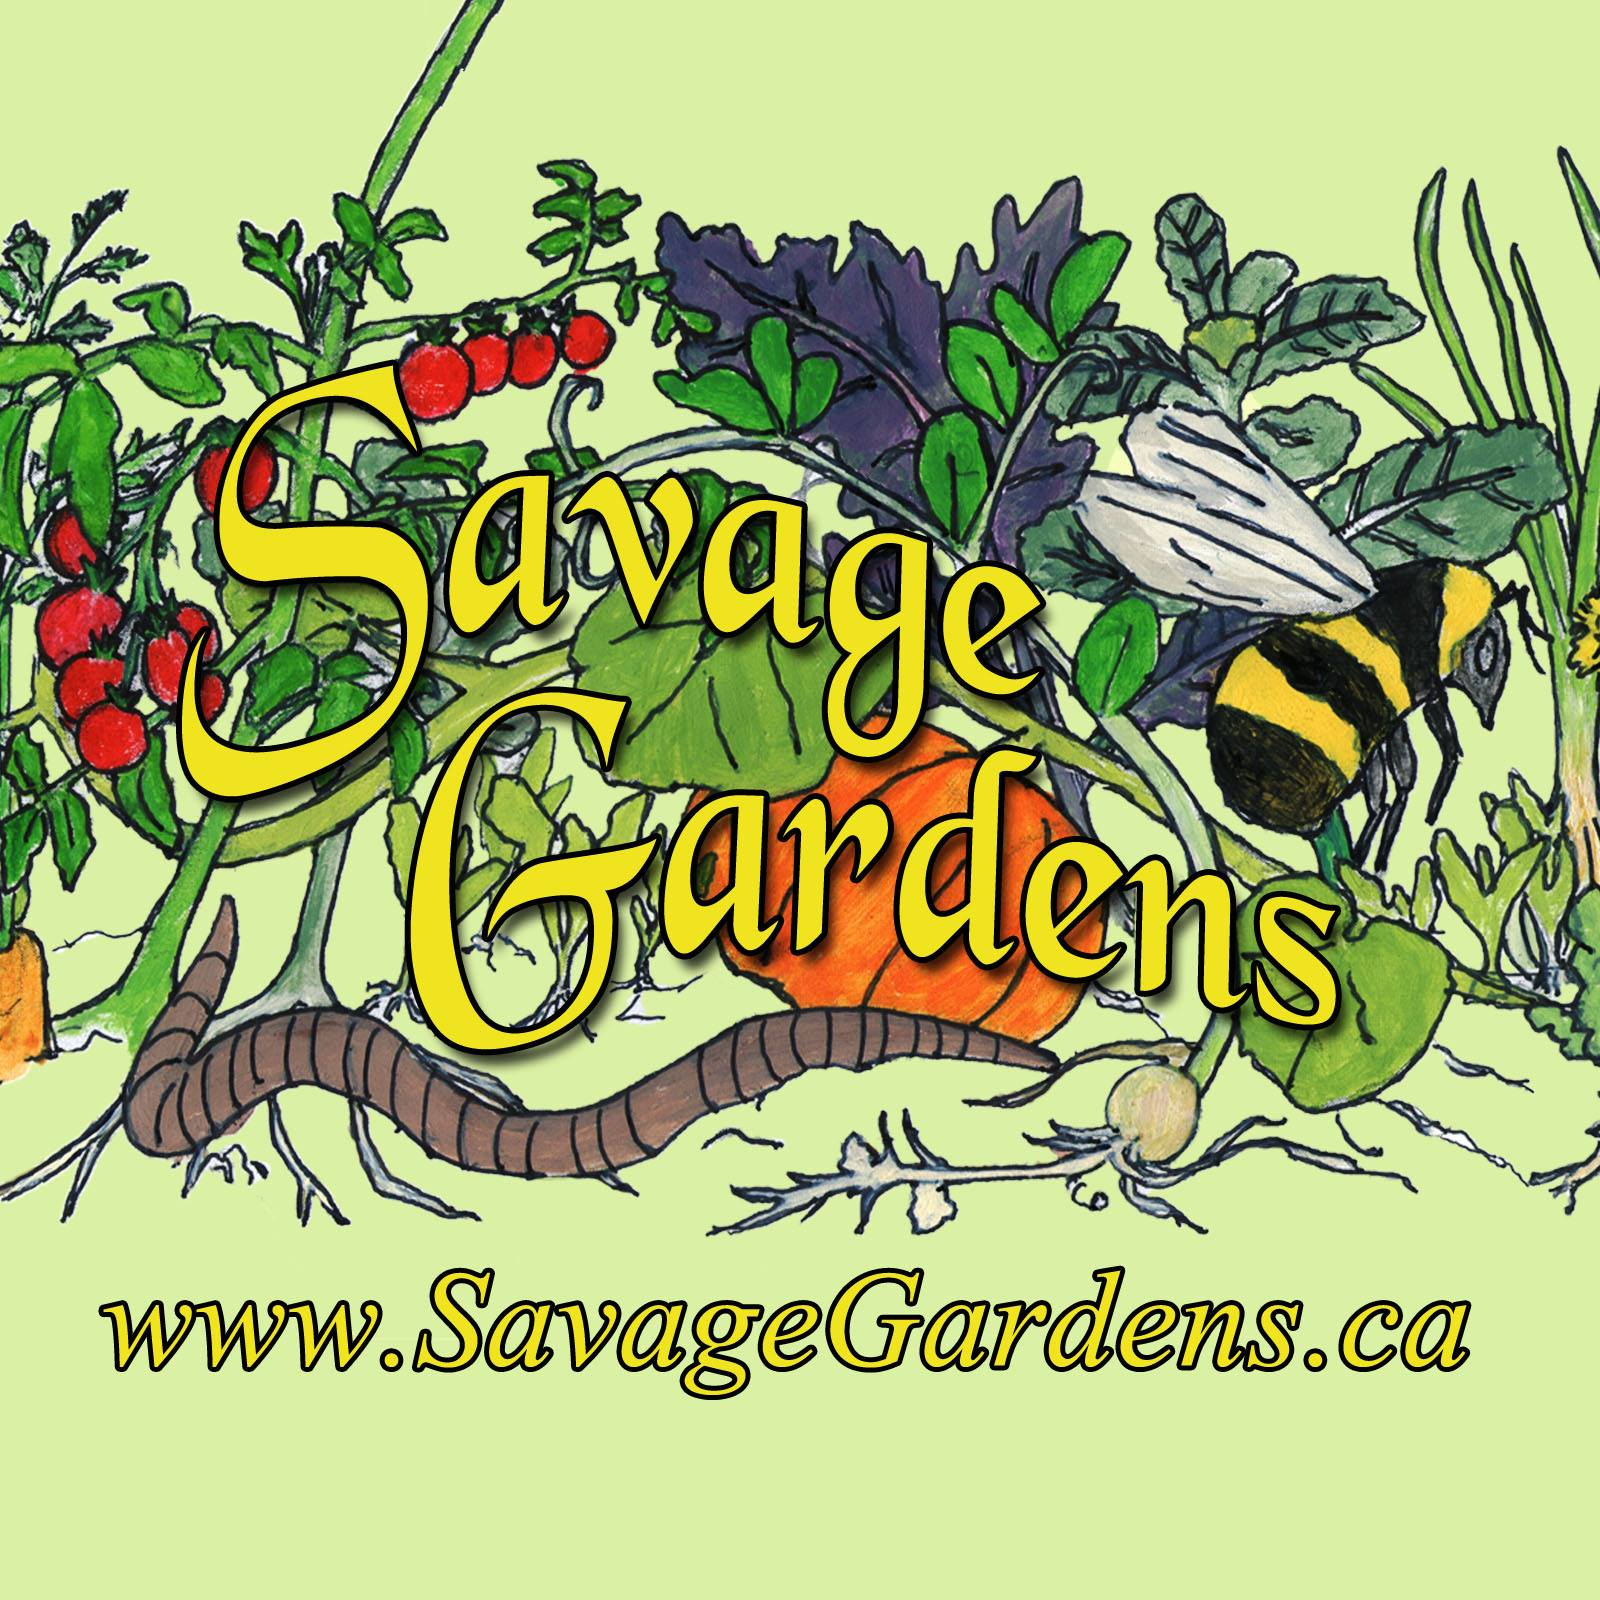 SavageGardens